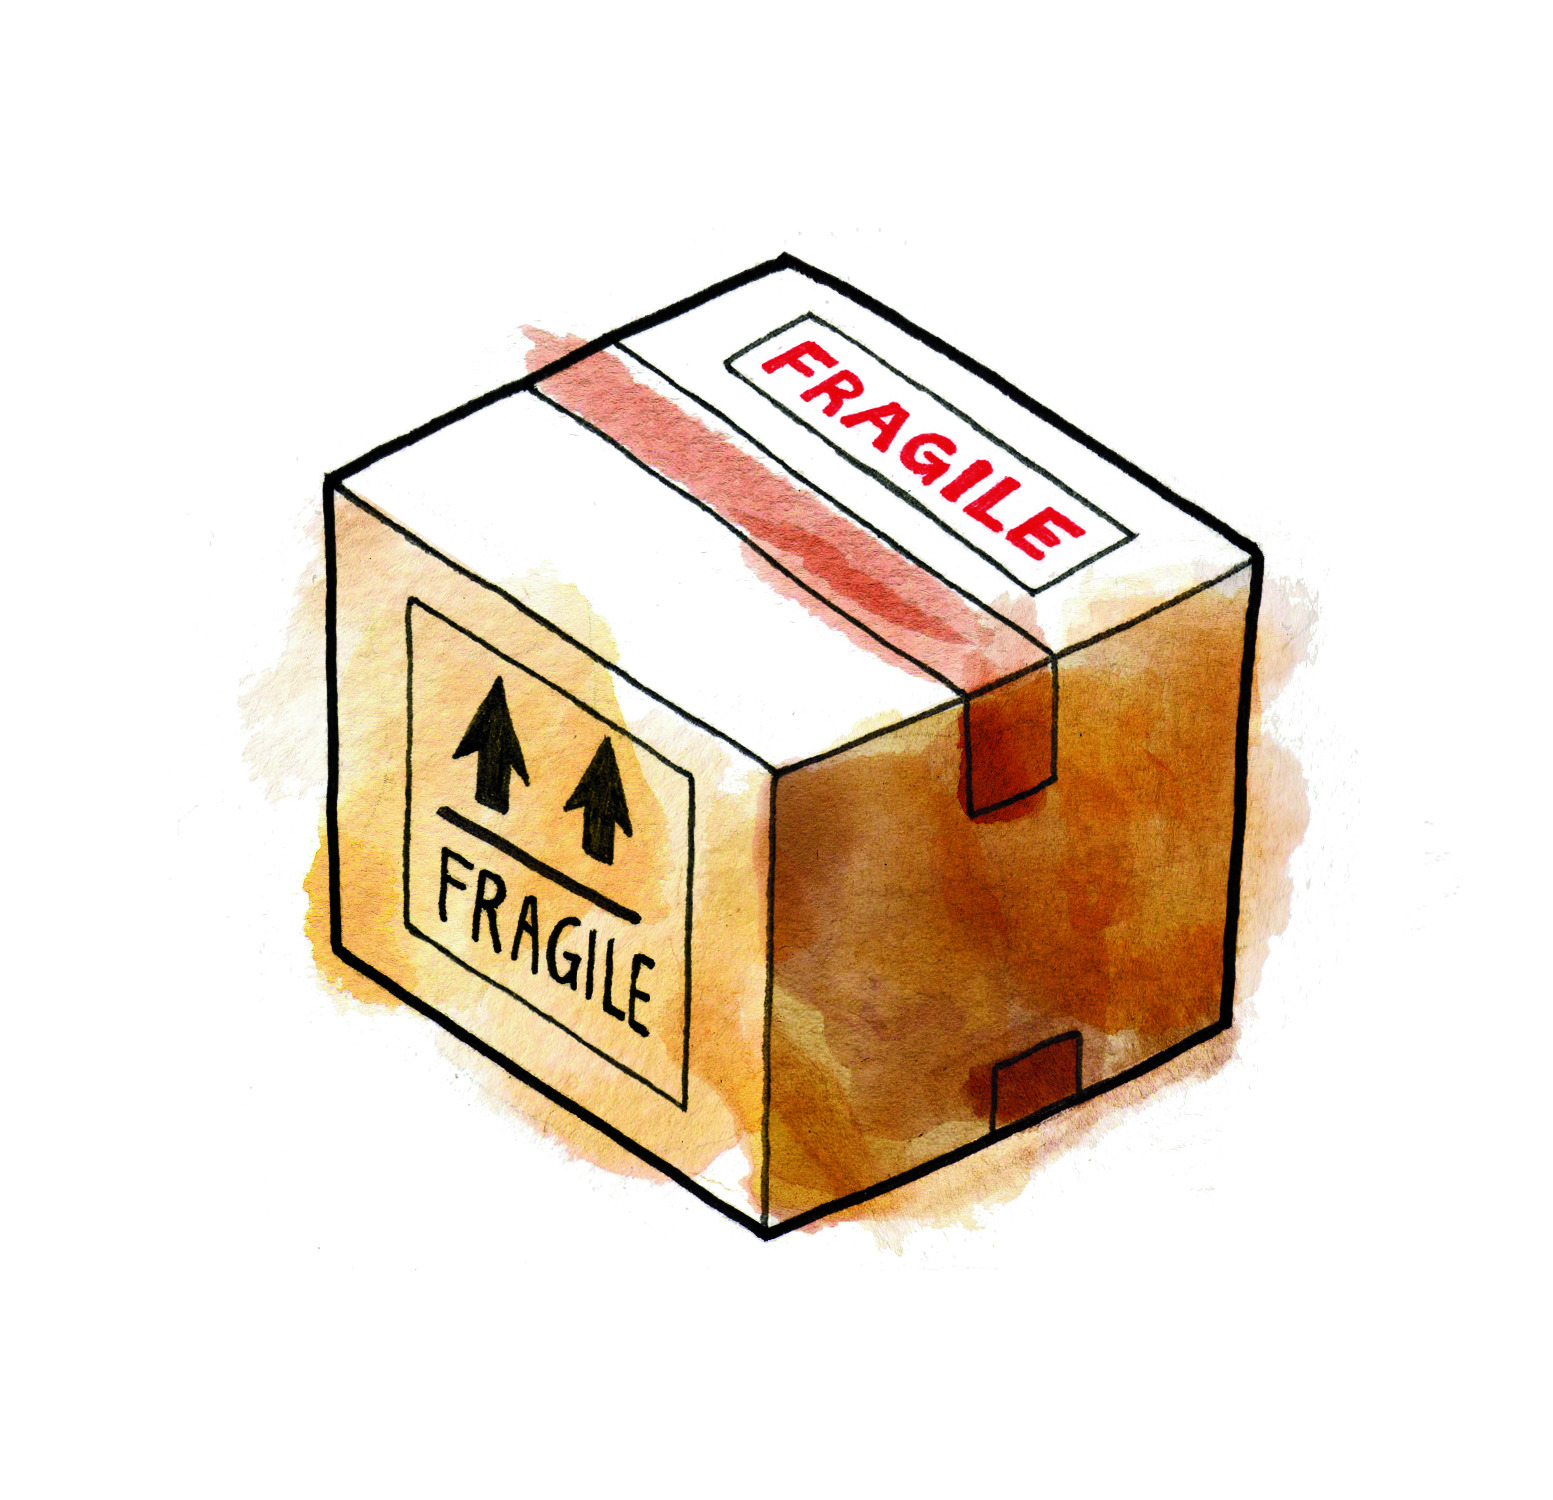 Illustration: box of cookies ready to ship